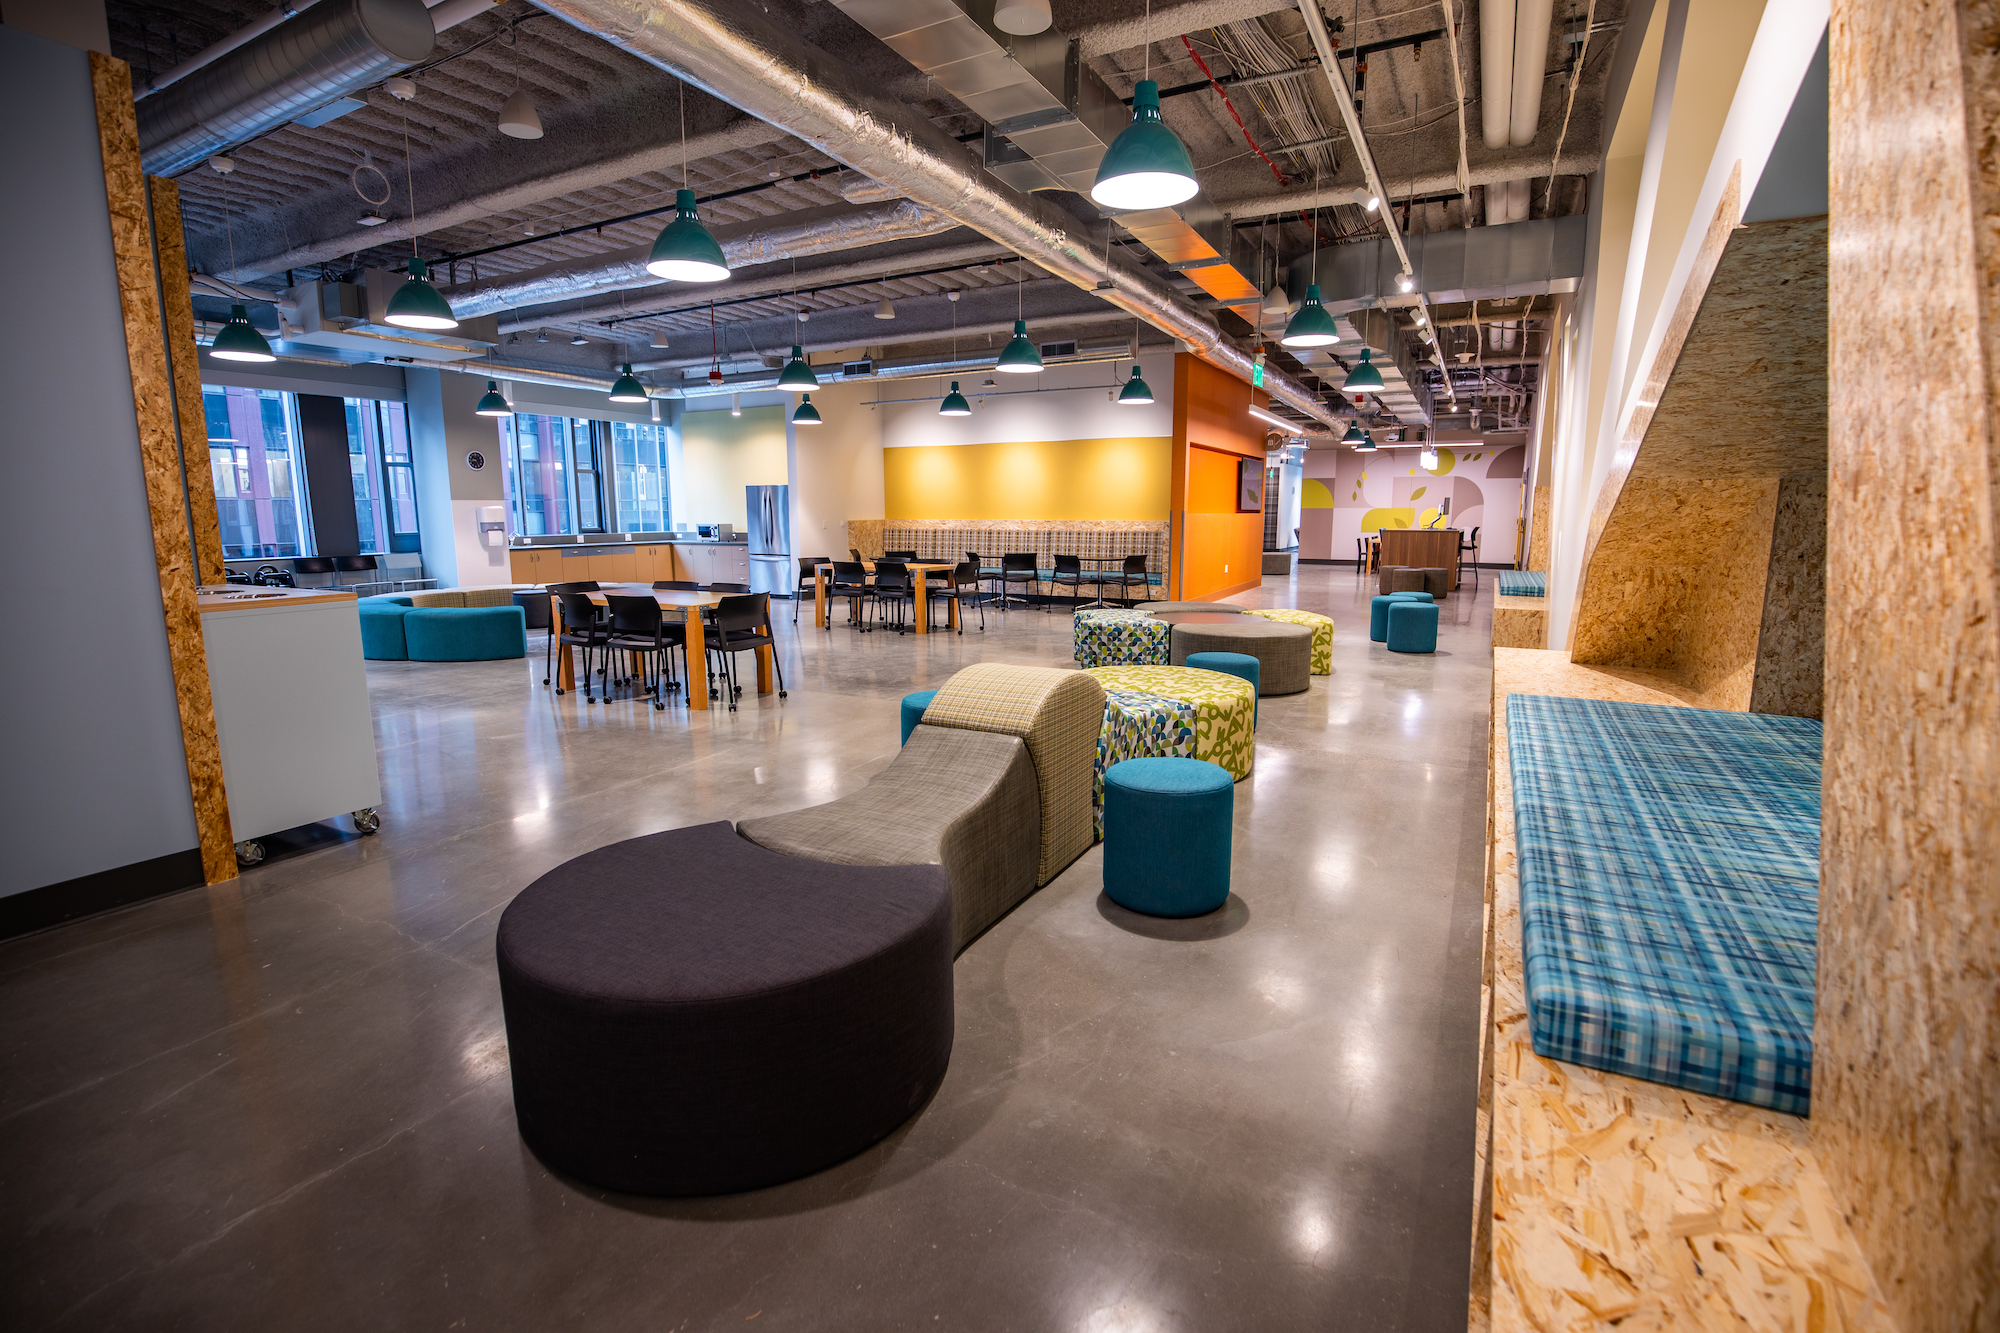 Photos: Inside Amazon's new 8-floor family homeless shelter attached to its Seattle HQ